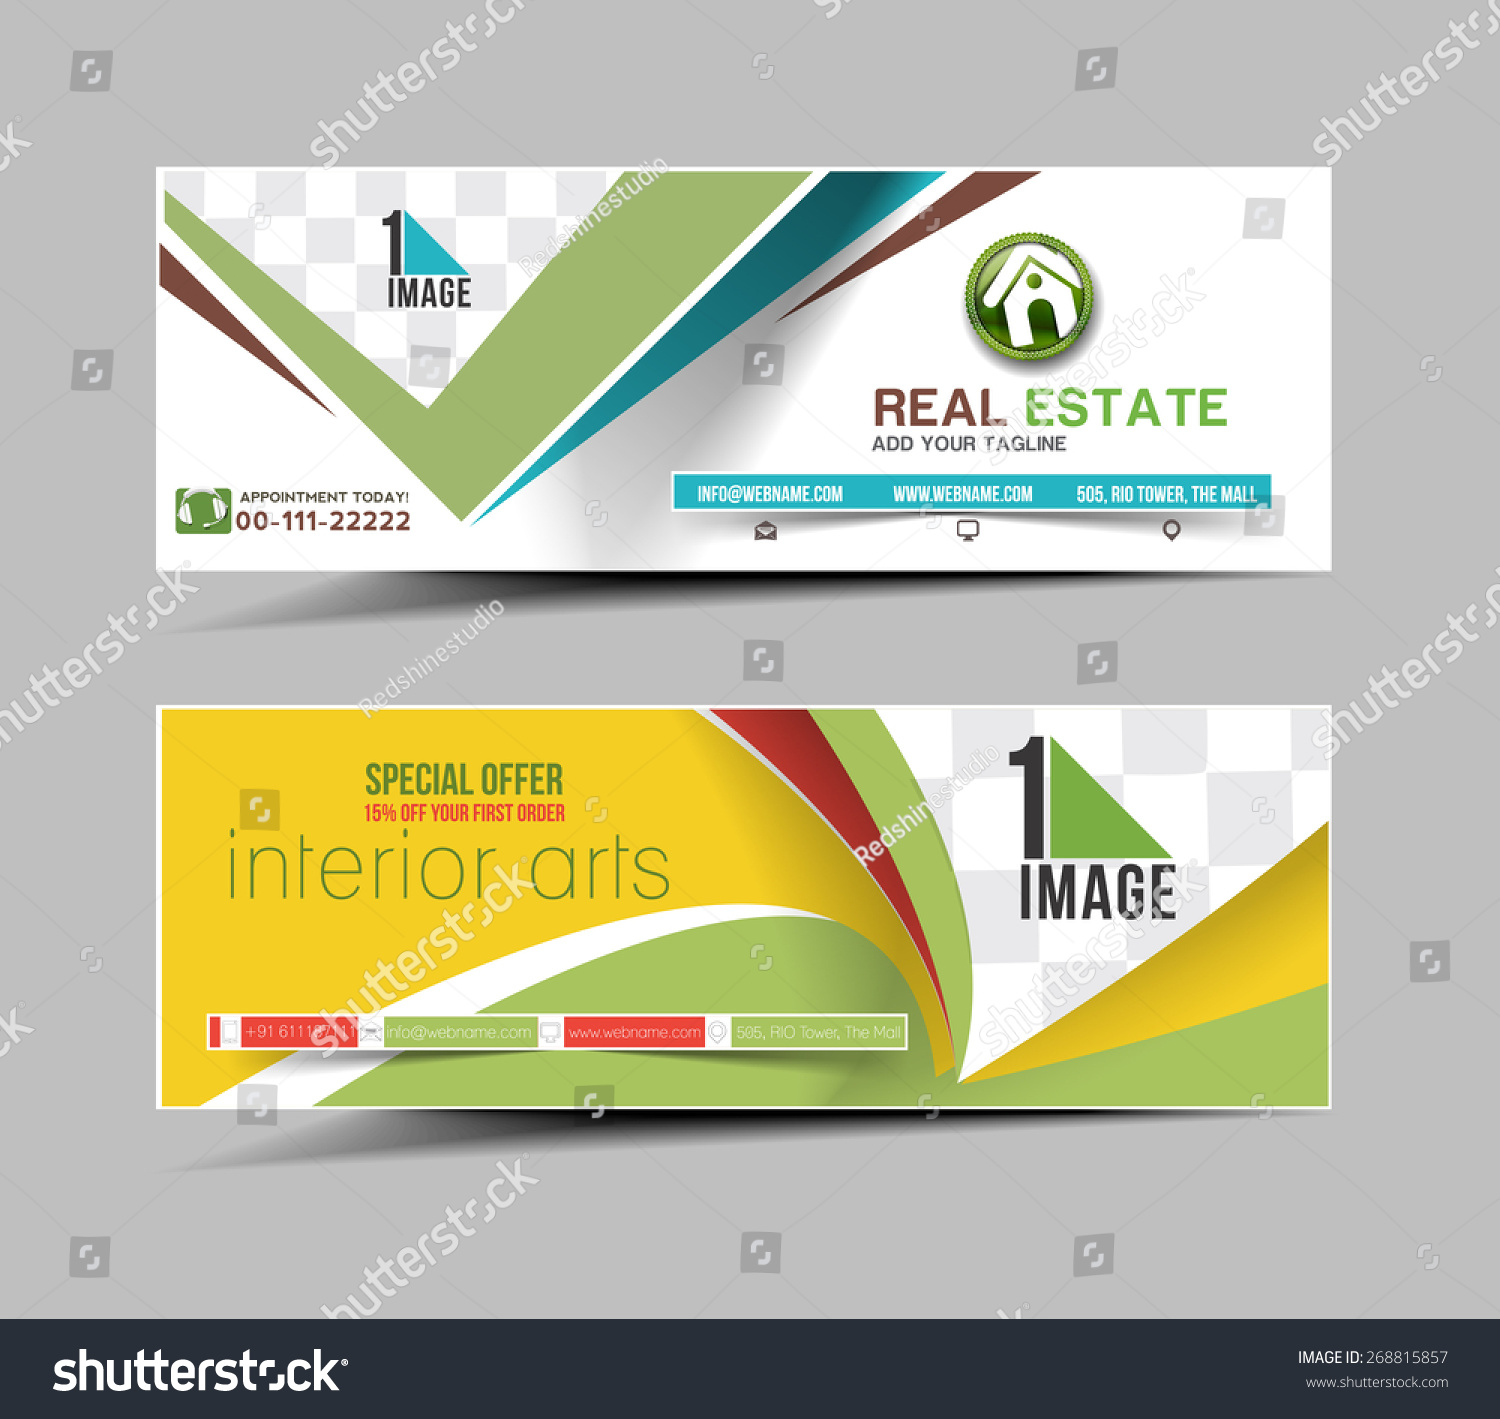 real estate business ad web banner stock vector  real estate business ad web banner header layout template